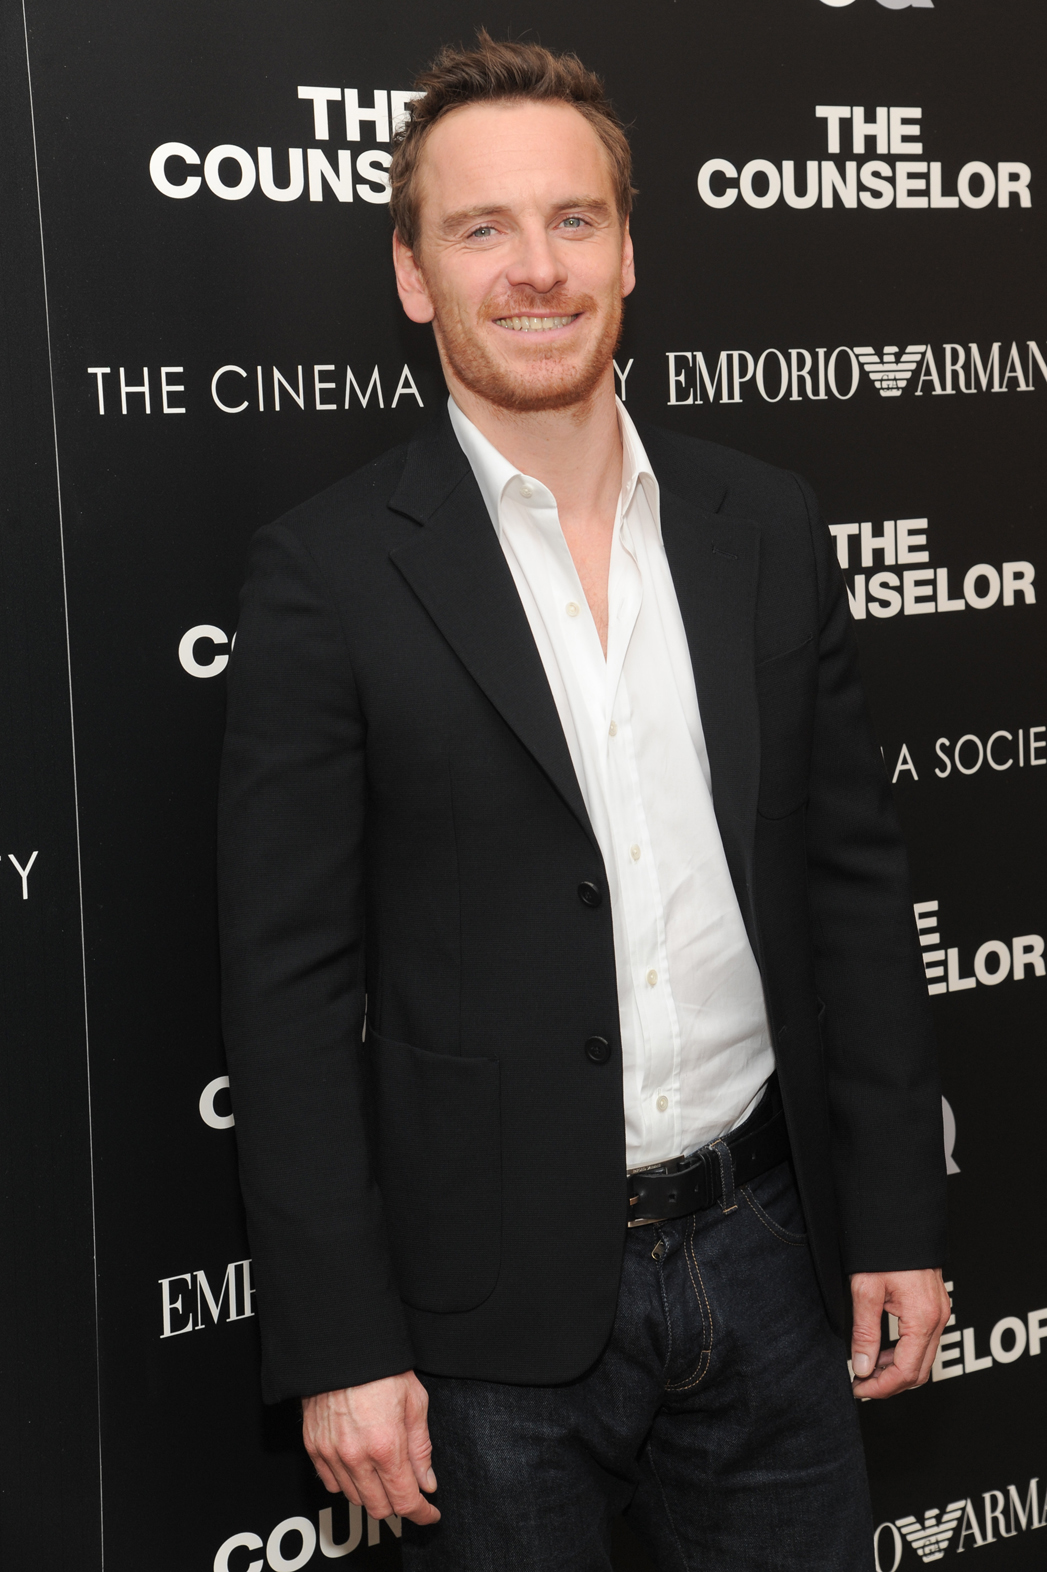 Michael Fassbender The Counselor NY Screening - P 2013